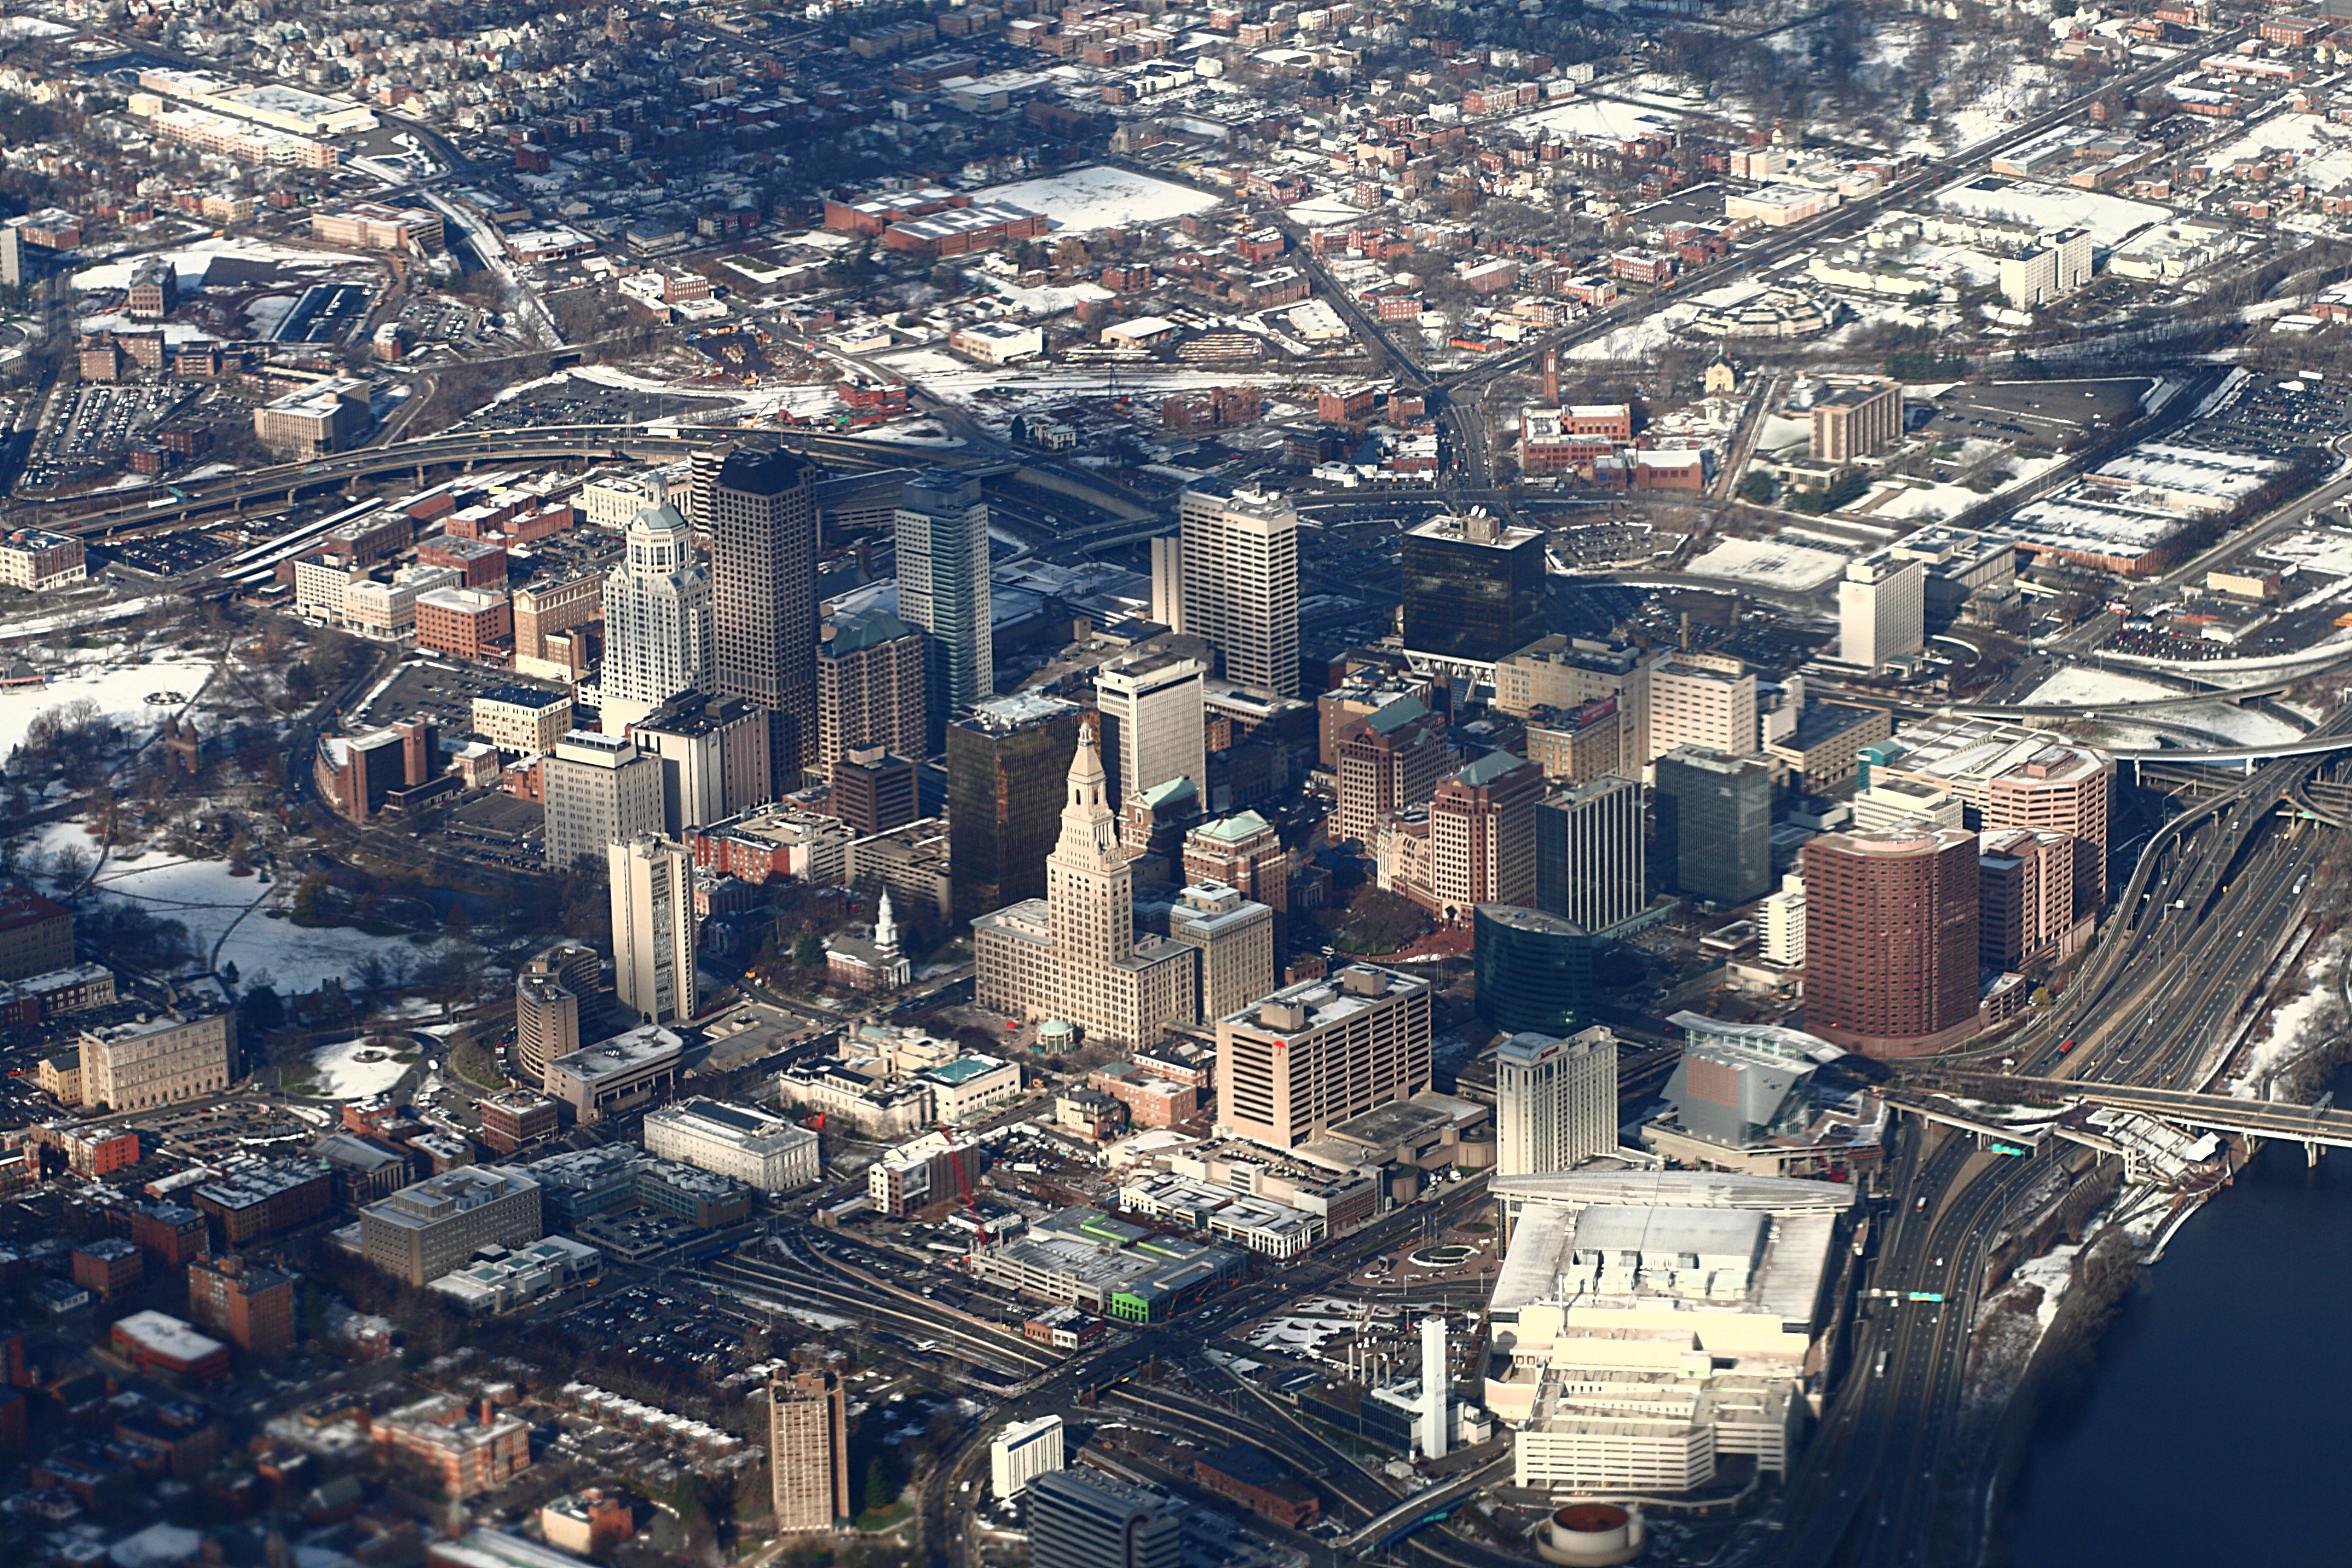 File:Downtown Hartford from above, 2009-12-10.jpg - Wikimedia Commons